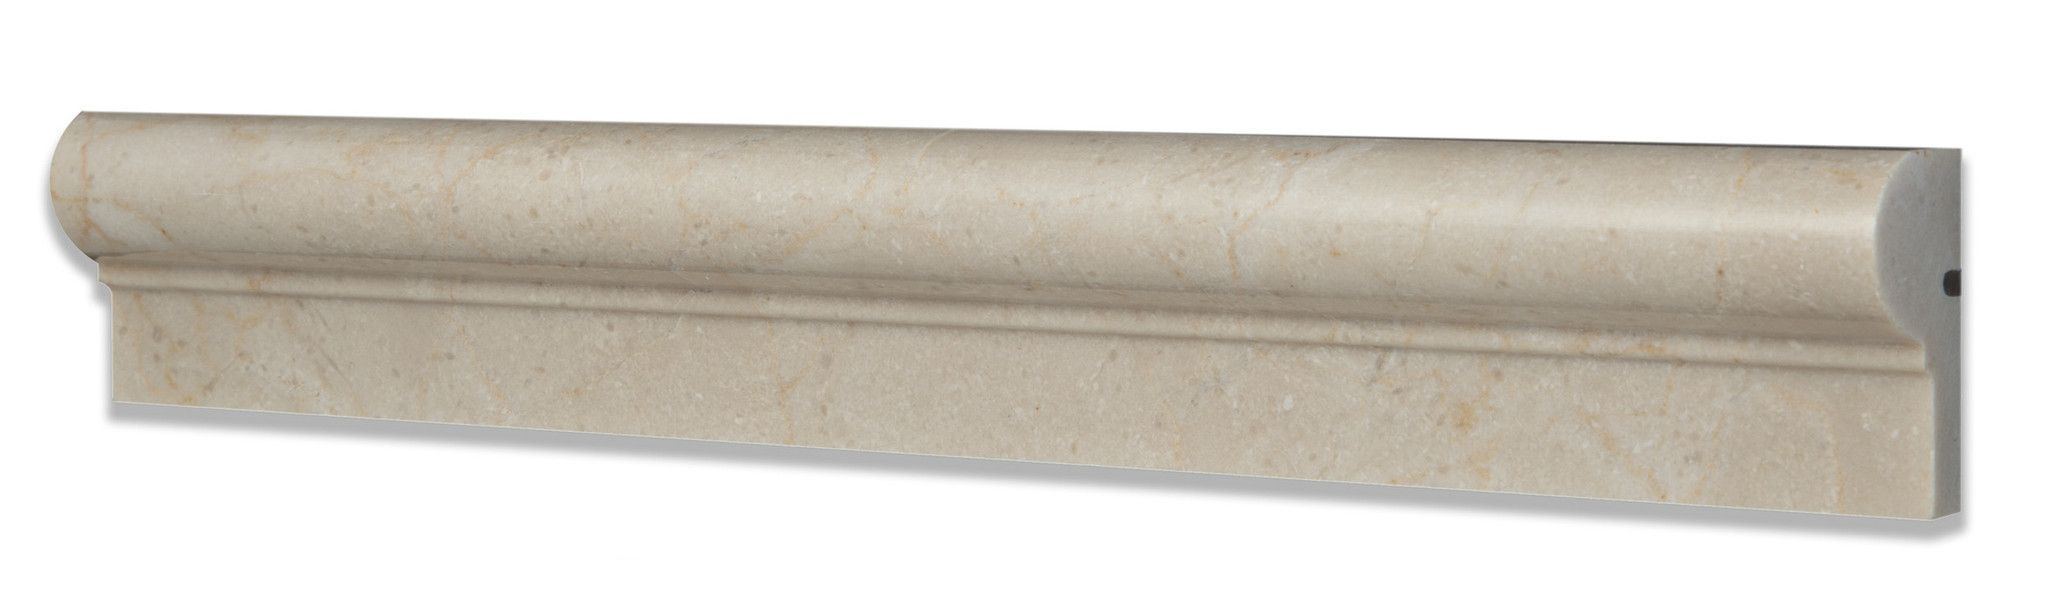 Crema Marfil Marble Polished OG-1 Chair Rail Molding Trim ...